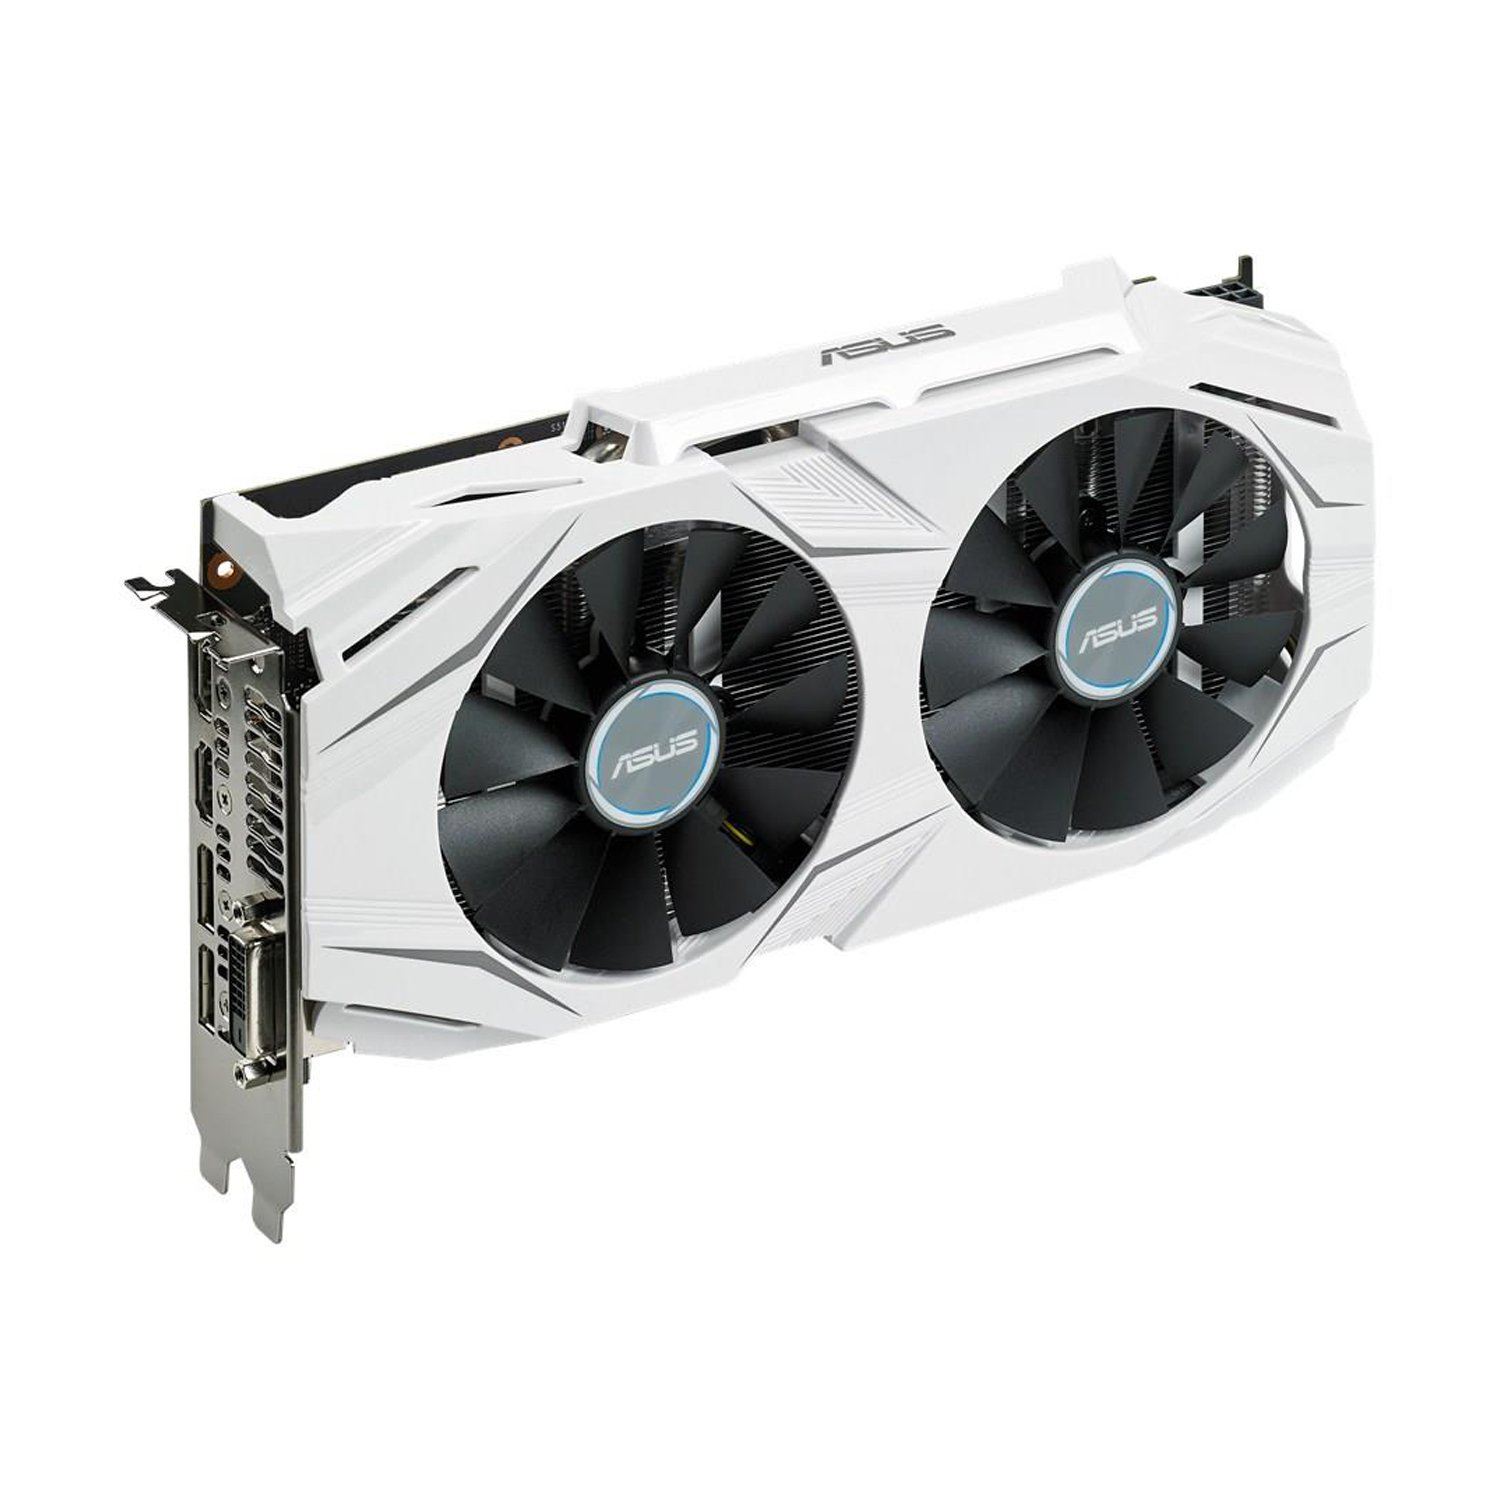 Image result for Asus Dual Series GTX 1060 3GB GDDR5 Video Card with Color-Matched PC Build for Esports Gaming